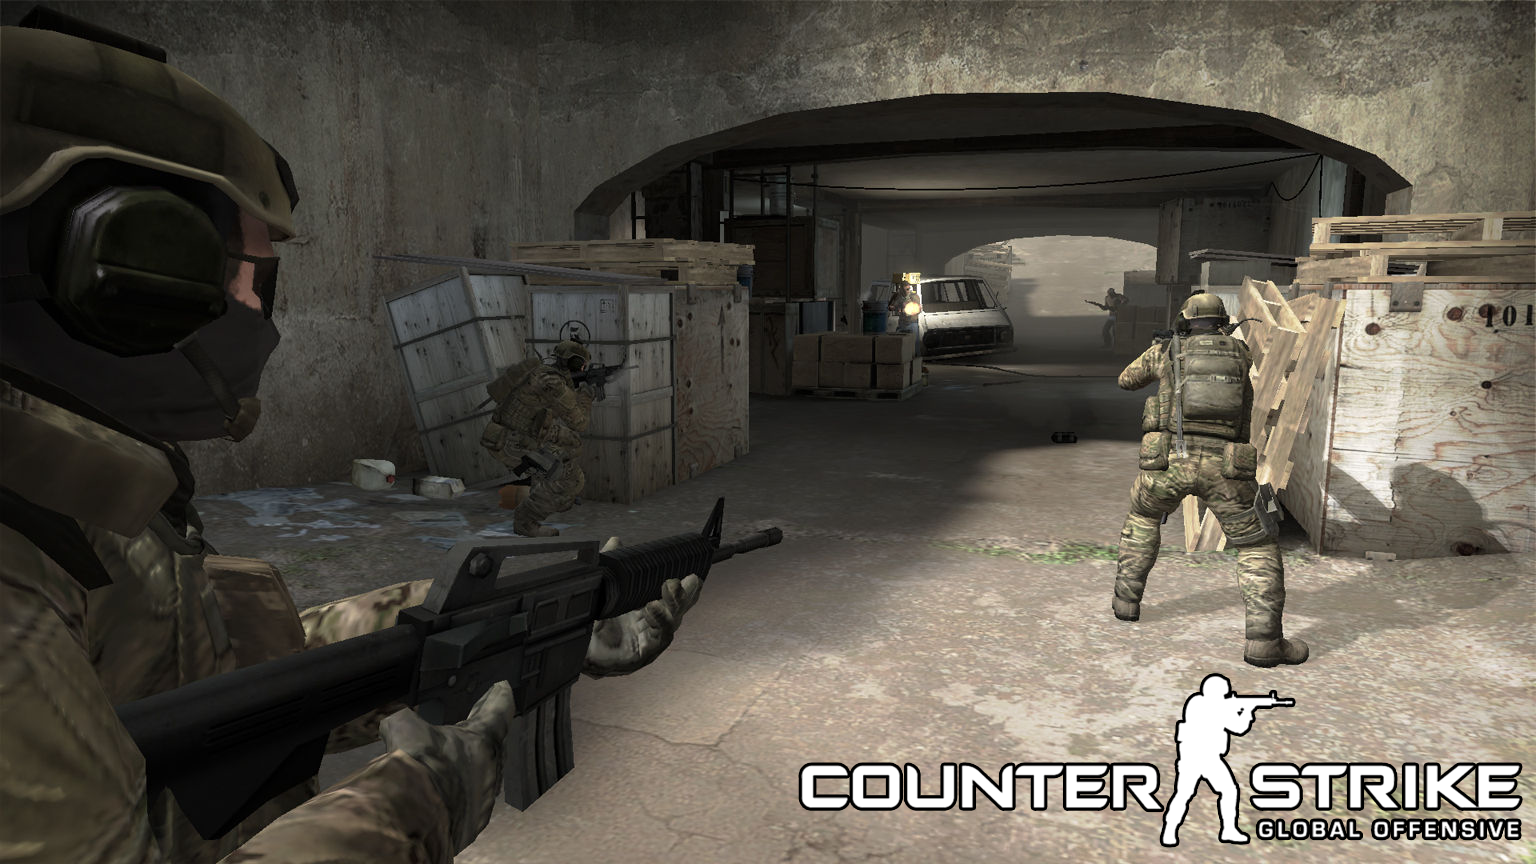 <i>Counter Strike: Global Offensive</i> Launches Aug 21 for Just $15